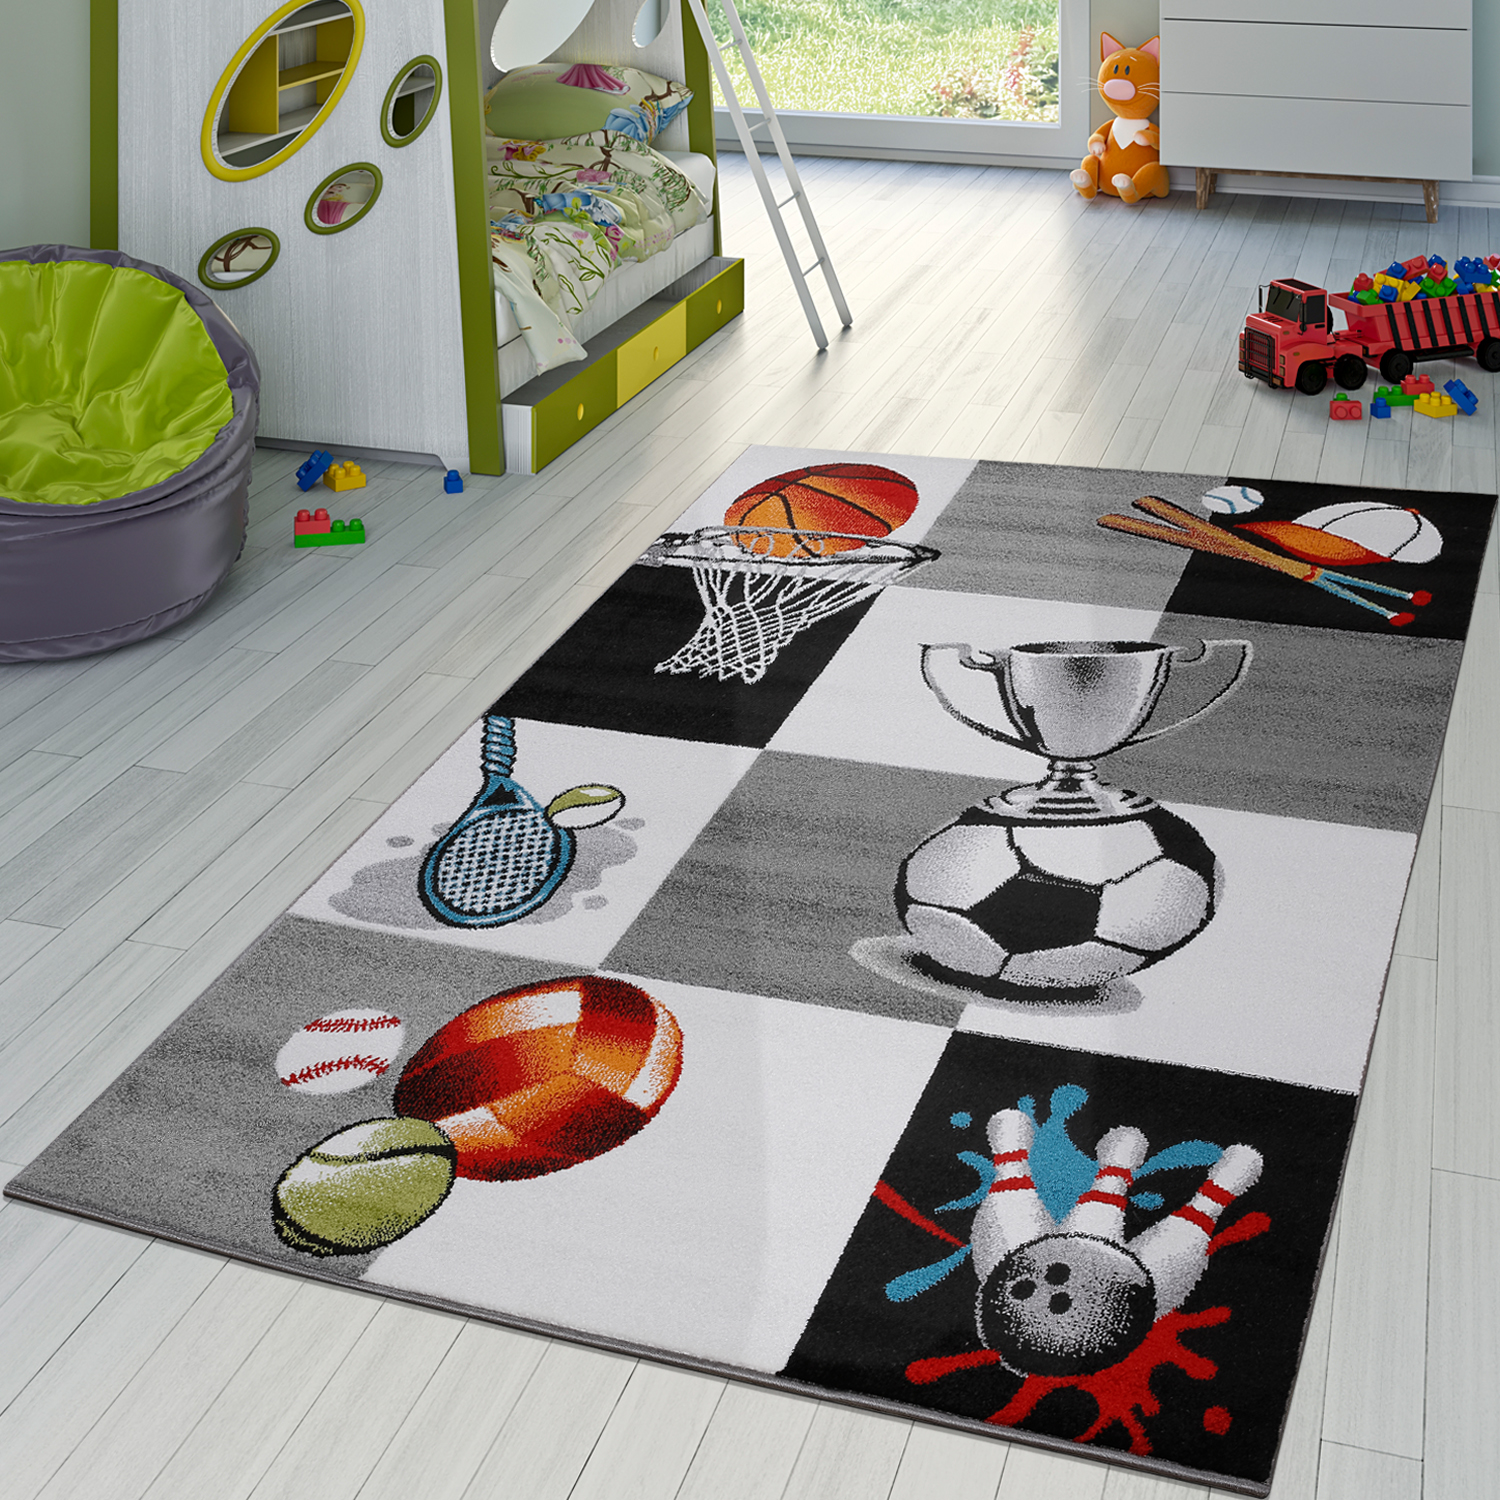 kinder teppich sportwelt fu ball pokal tennis kinderzimmer teppich grau creme kinderteppich. Black Bedroom Furniture Sets. Home Design Ideas